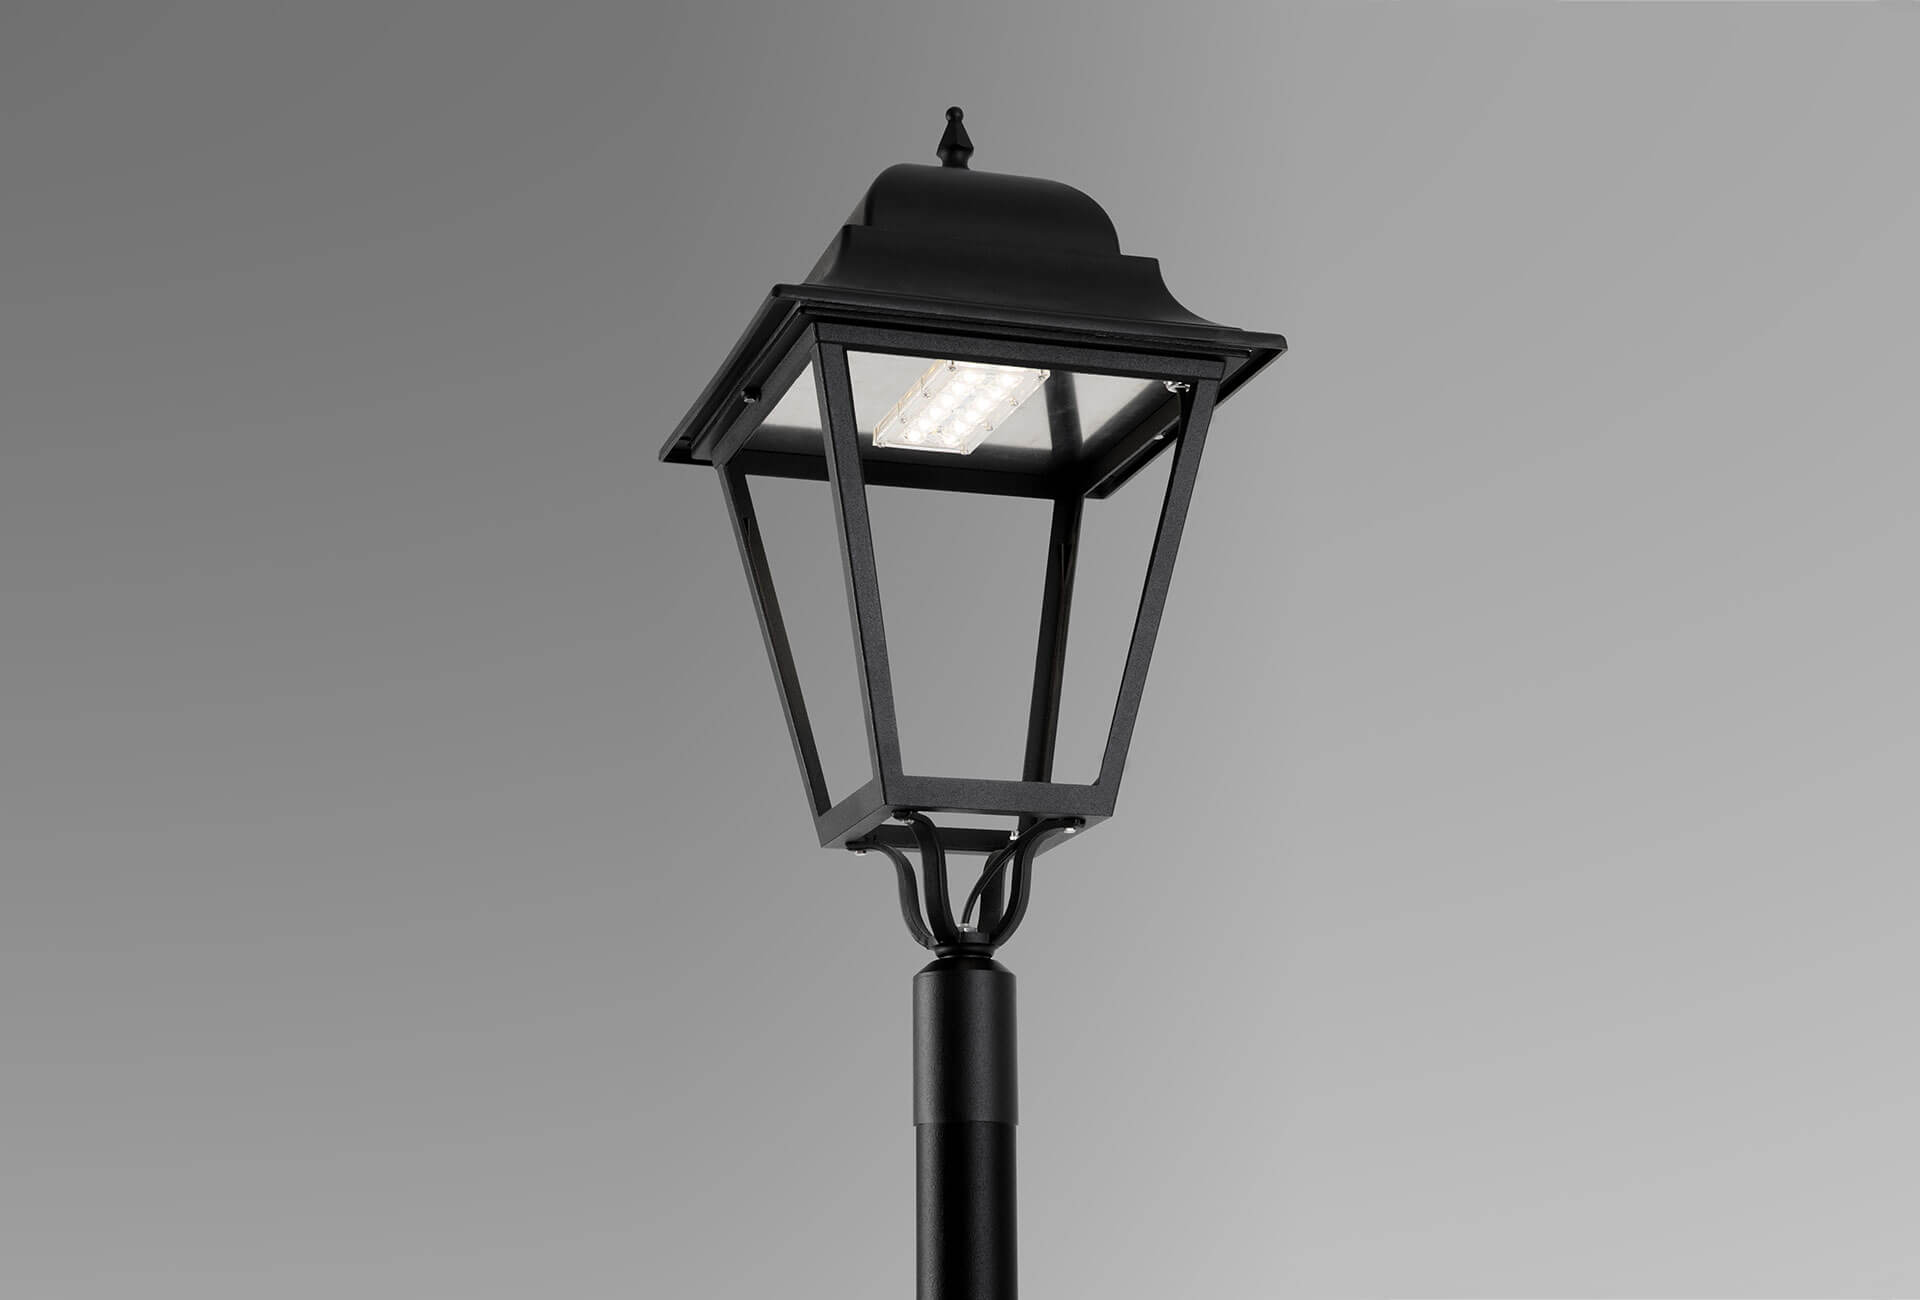 Photo light for street lighting 41